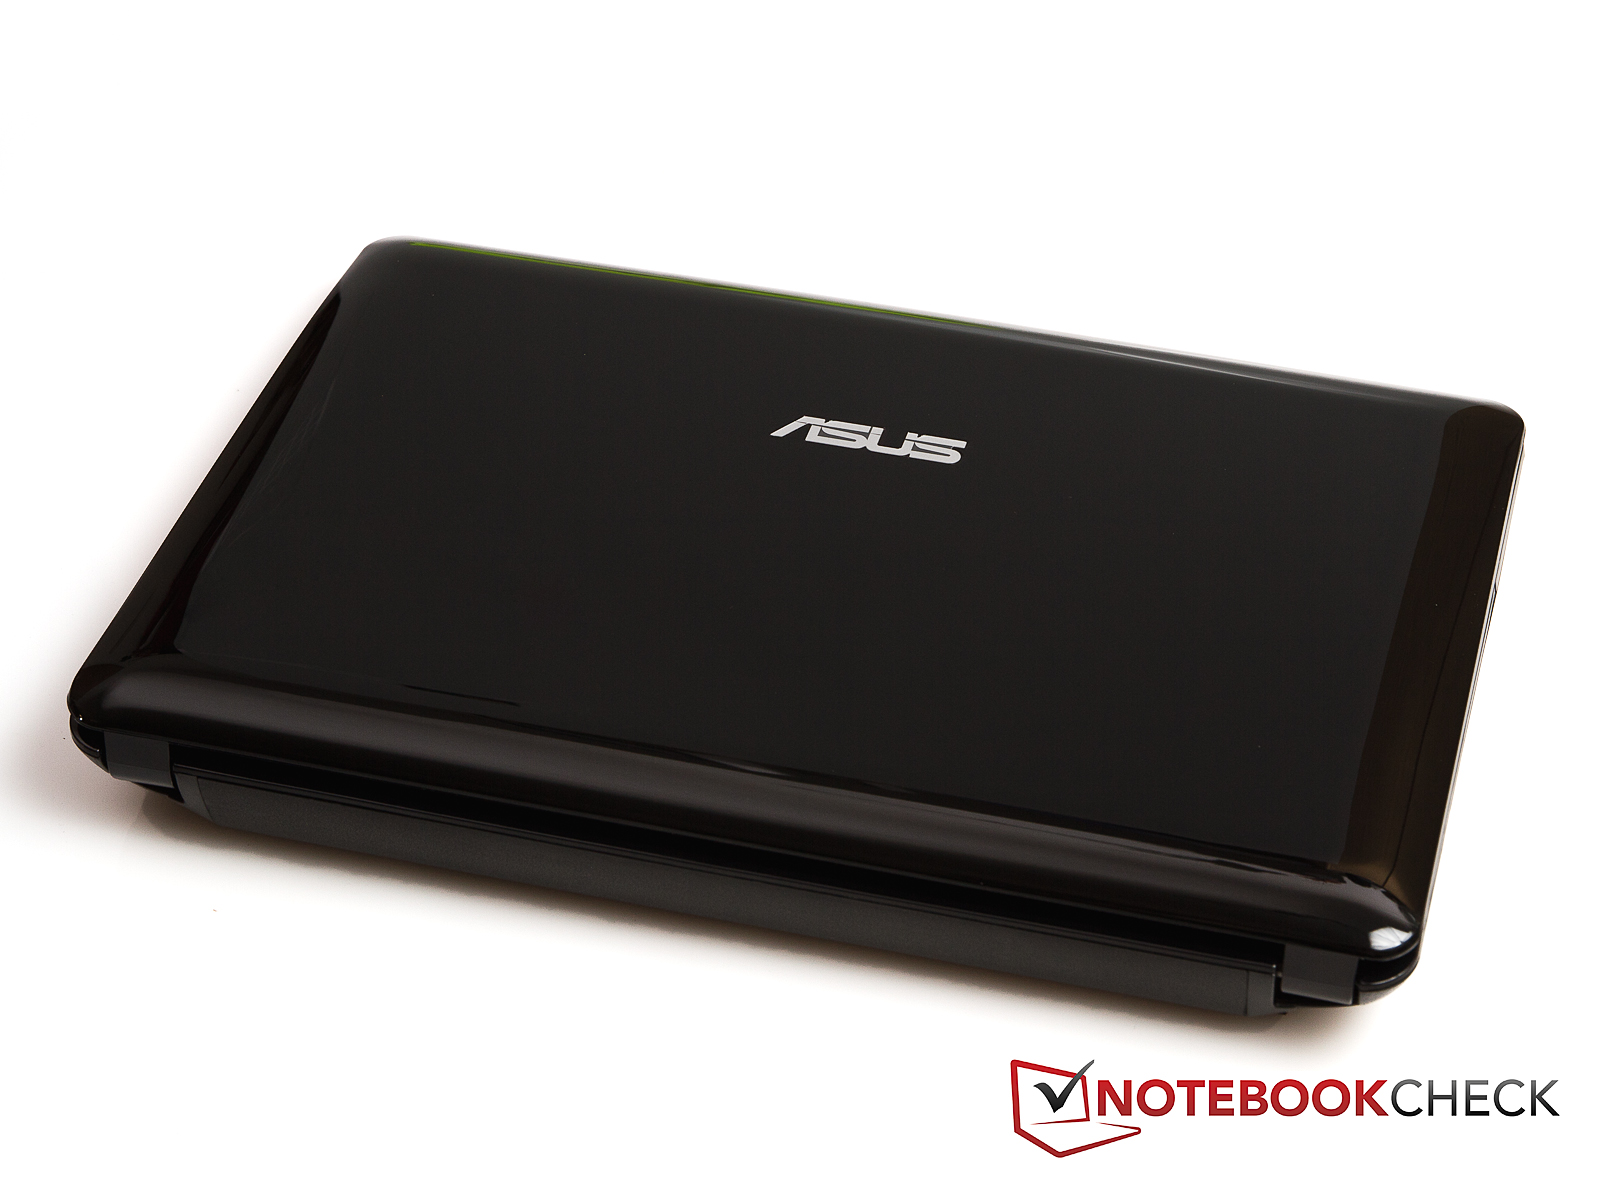 Review Asus Eee Pc 1015px Netbook Notebookcheck Net Reviews